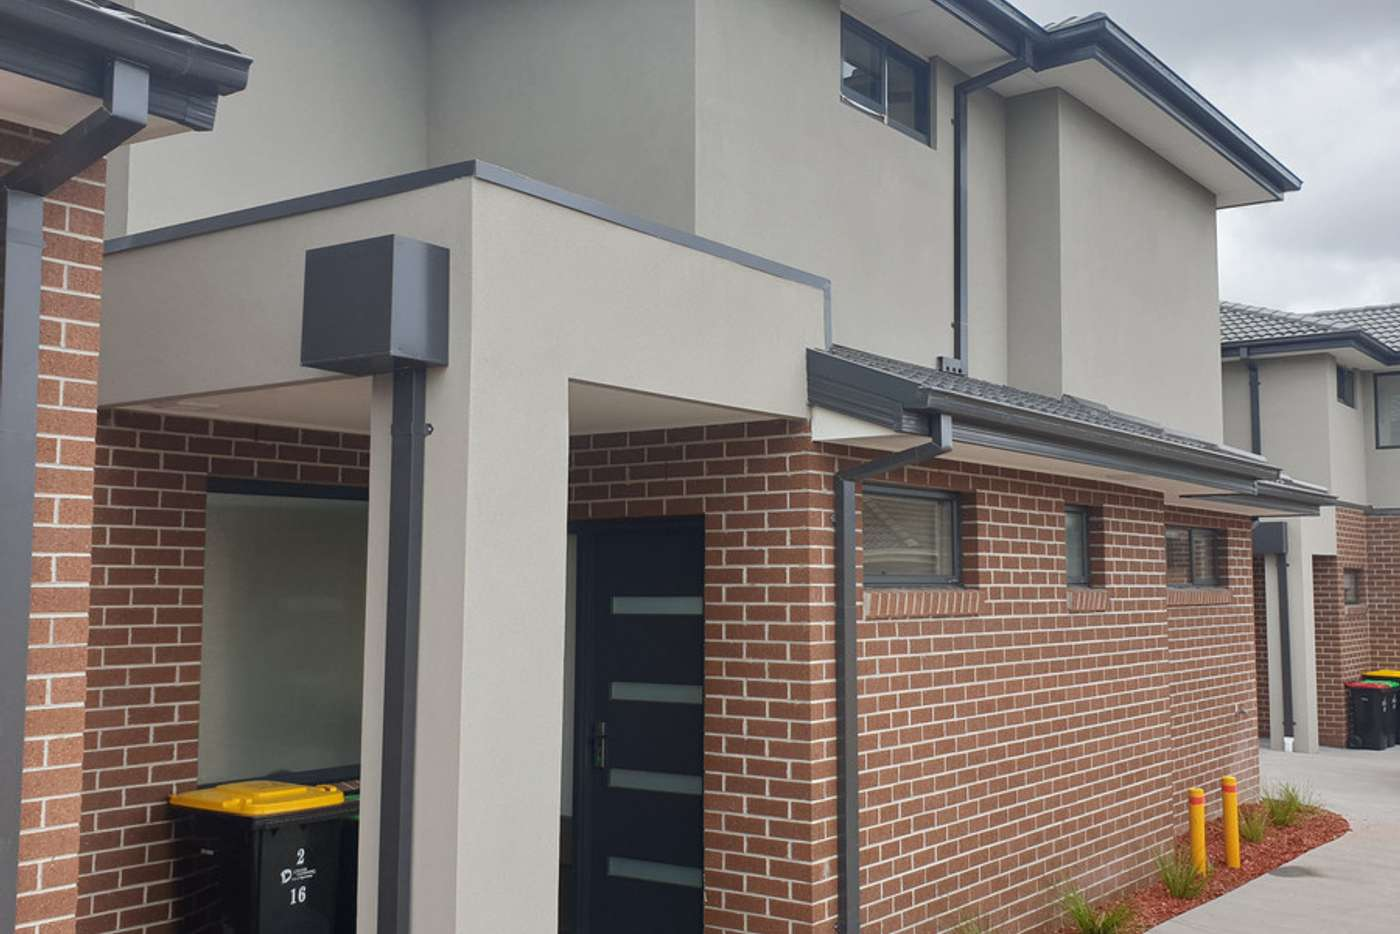 Main view of Homely townhouse listing, 2/16 Edith Street, Dandenong VIC 3175